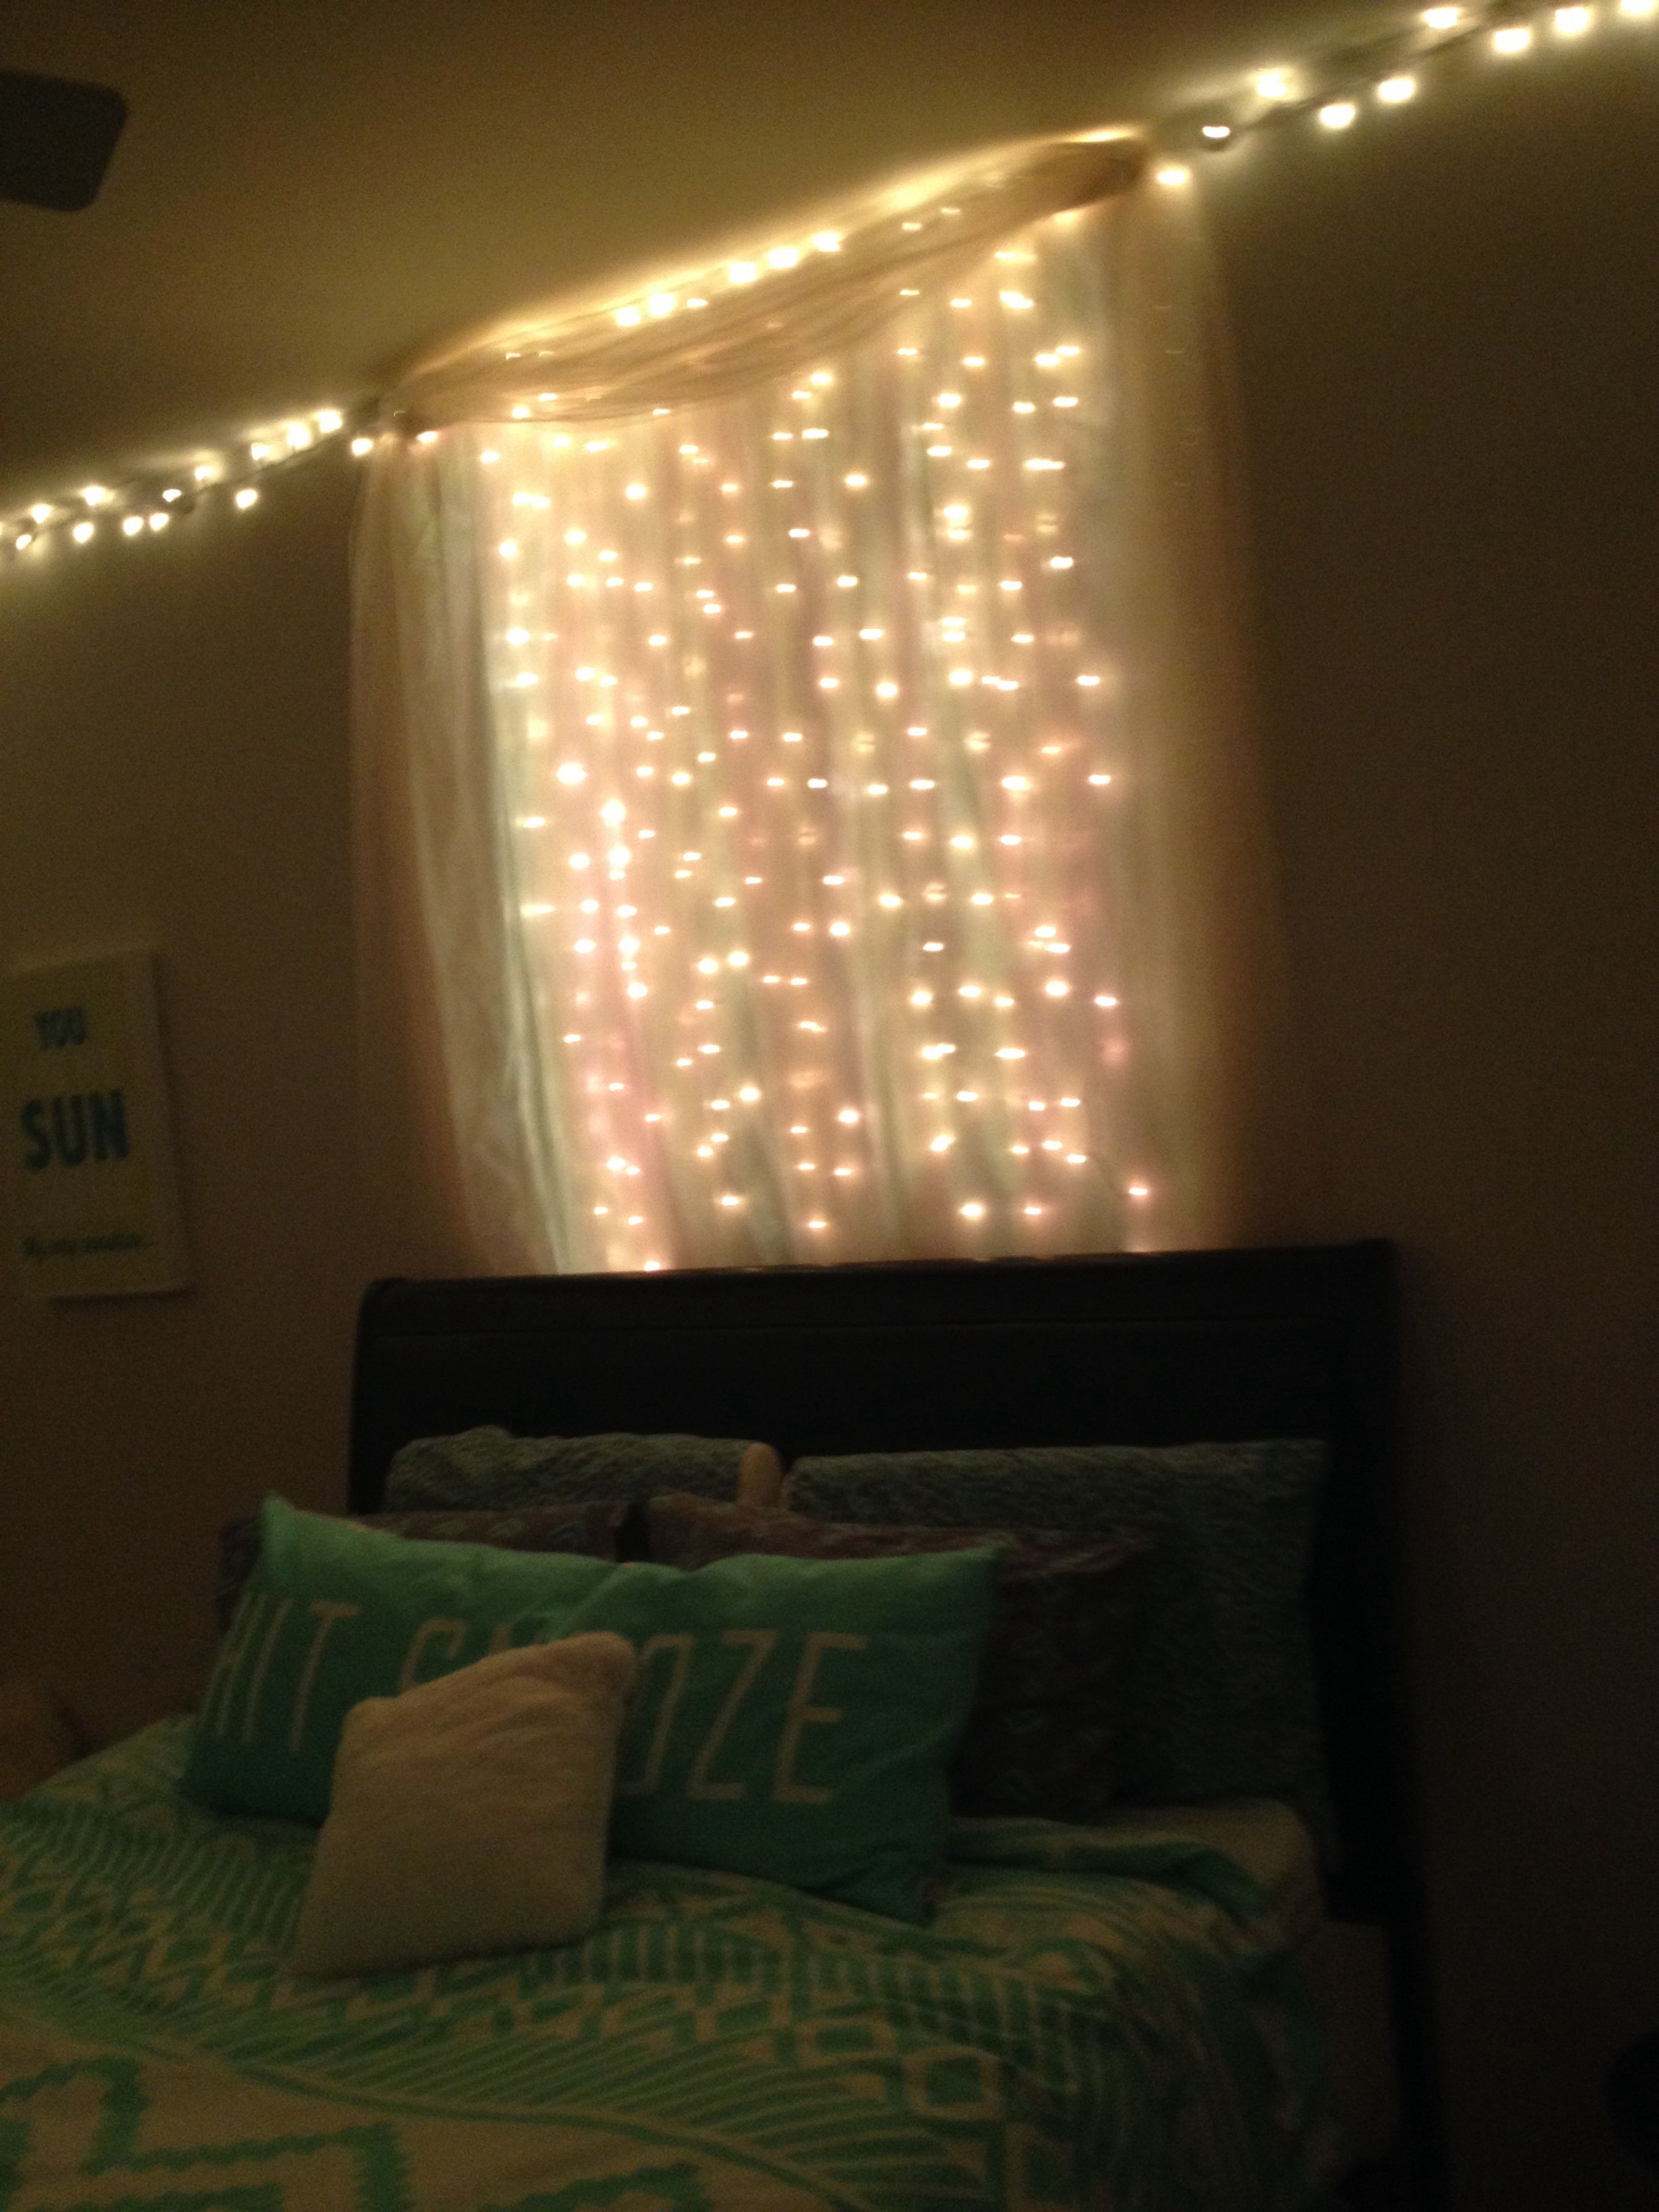 Dorm Safe String Lights : #lights bedroom lights, maybe dorm room. super easy. string lights, tulle, thumbtacks. good luck ...